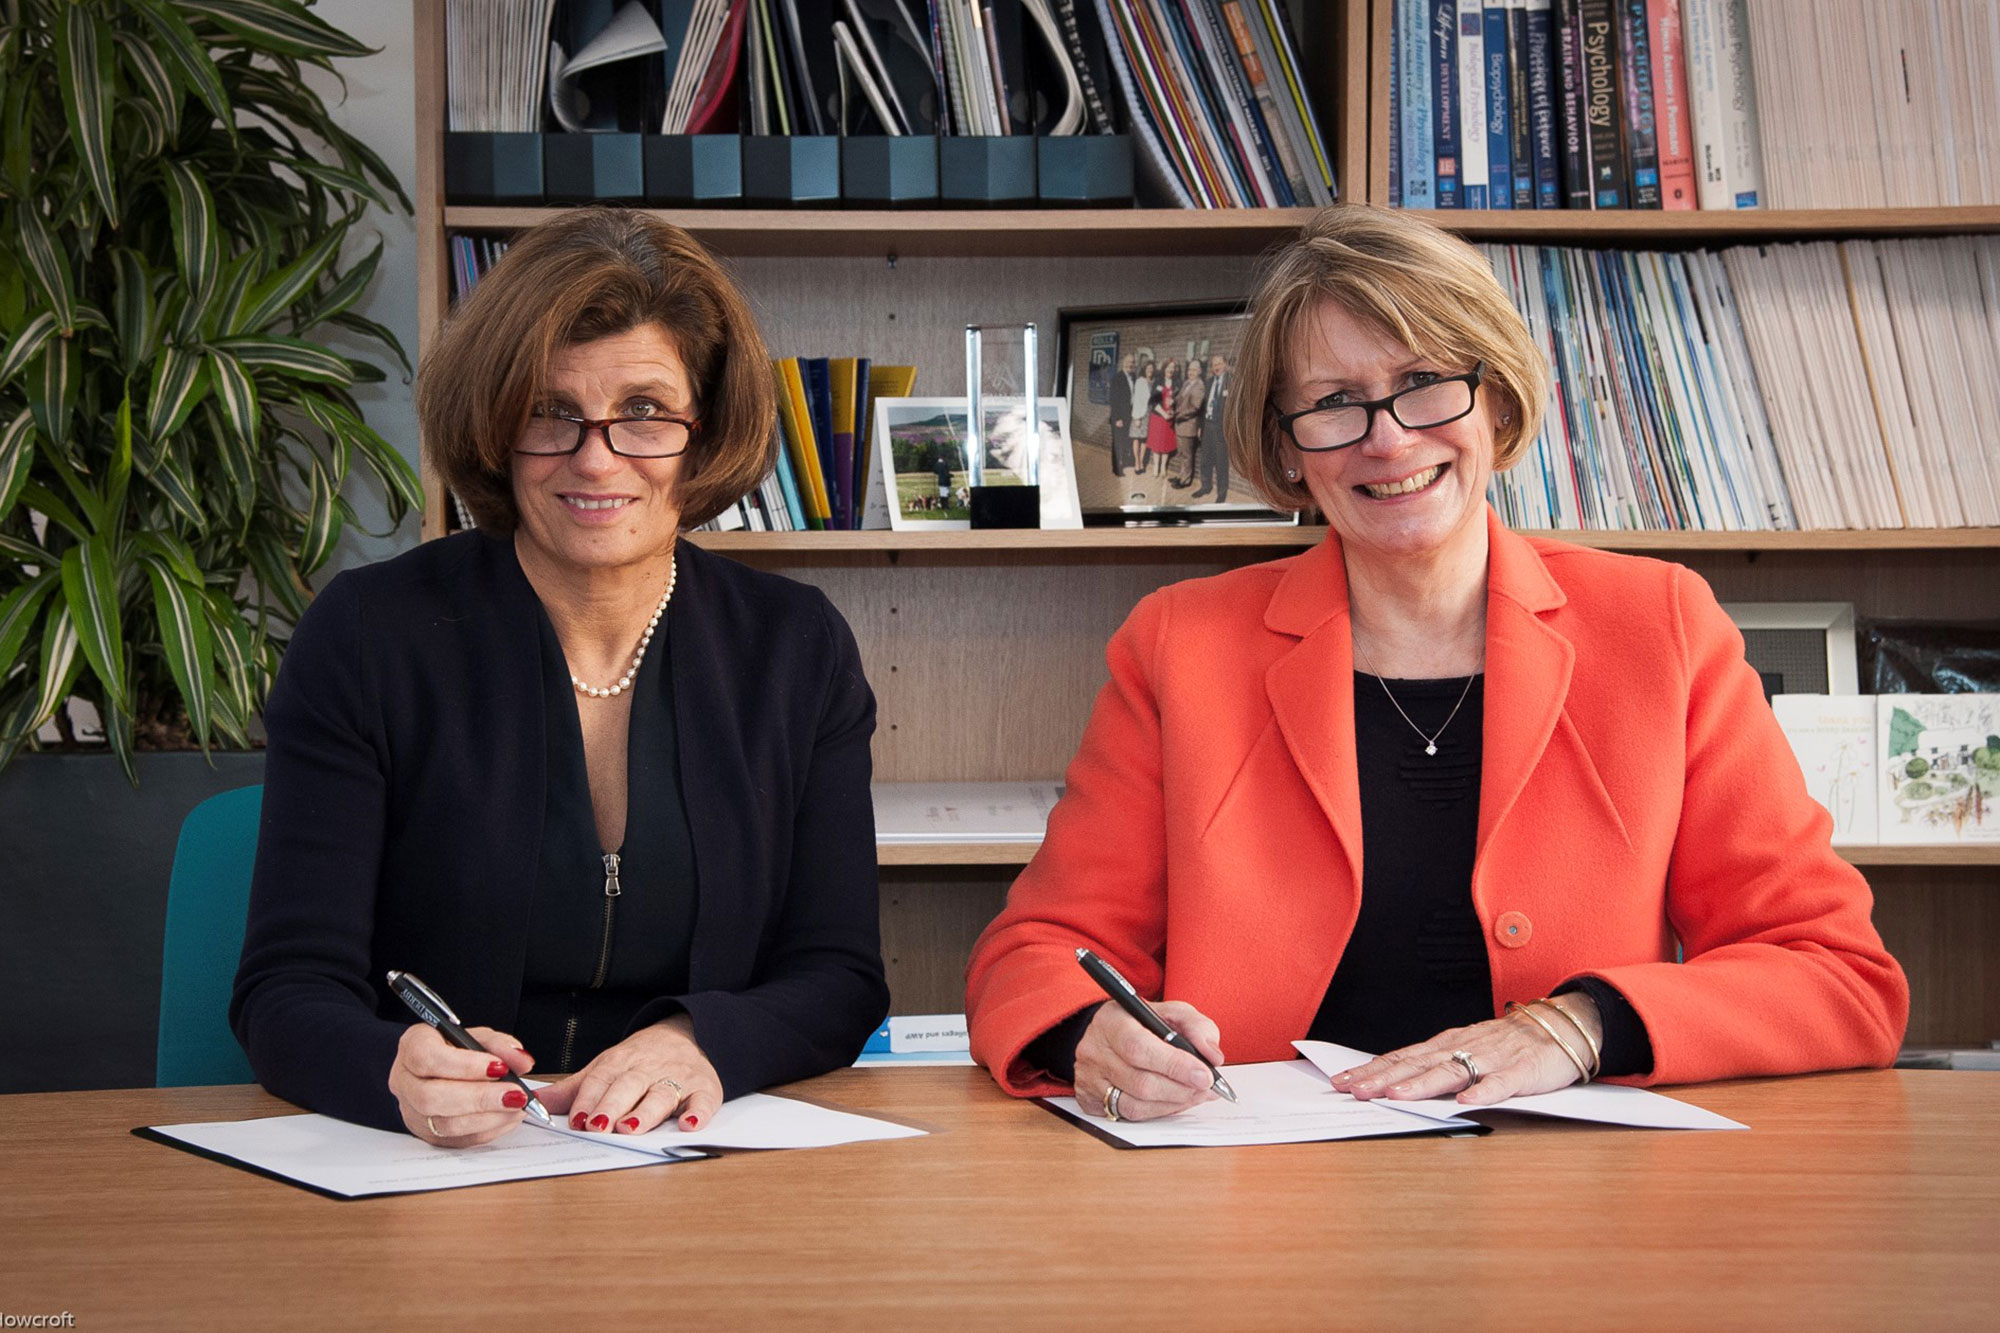 Professor Kathryn Mitchell and Advance HE CEO Alison Johns sign the memorandum of understanding